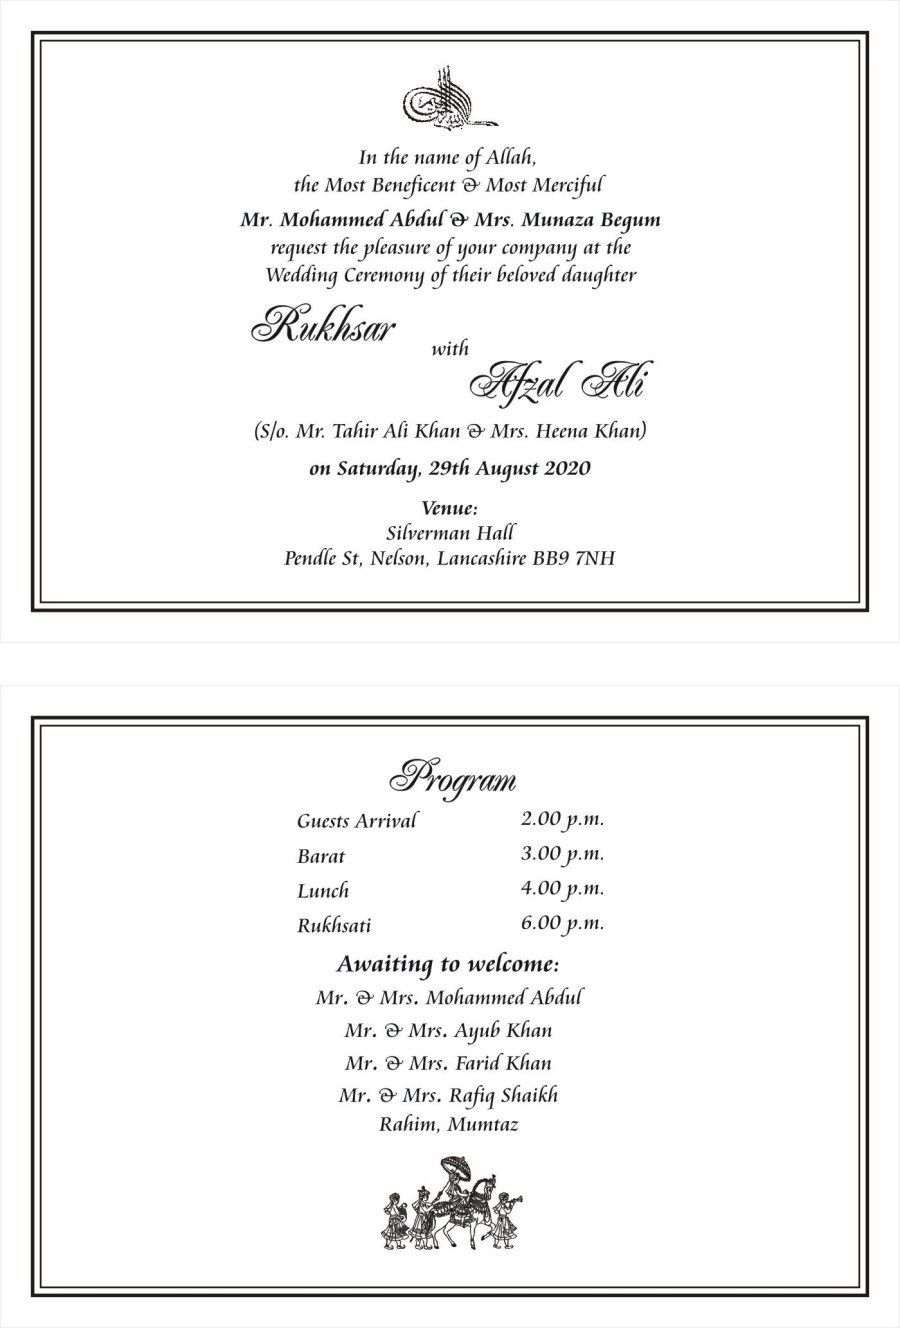 27 Brilliant Picture Of Muslim Wedding Invitations Denchaihosp Com Muslim Wedding Invitations Wedding Ceremony Invitations Wedding Invitation Card Wording